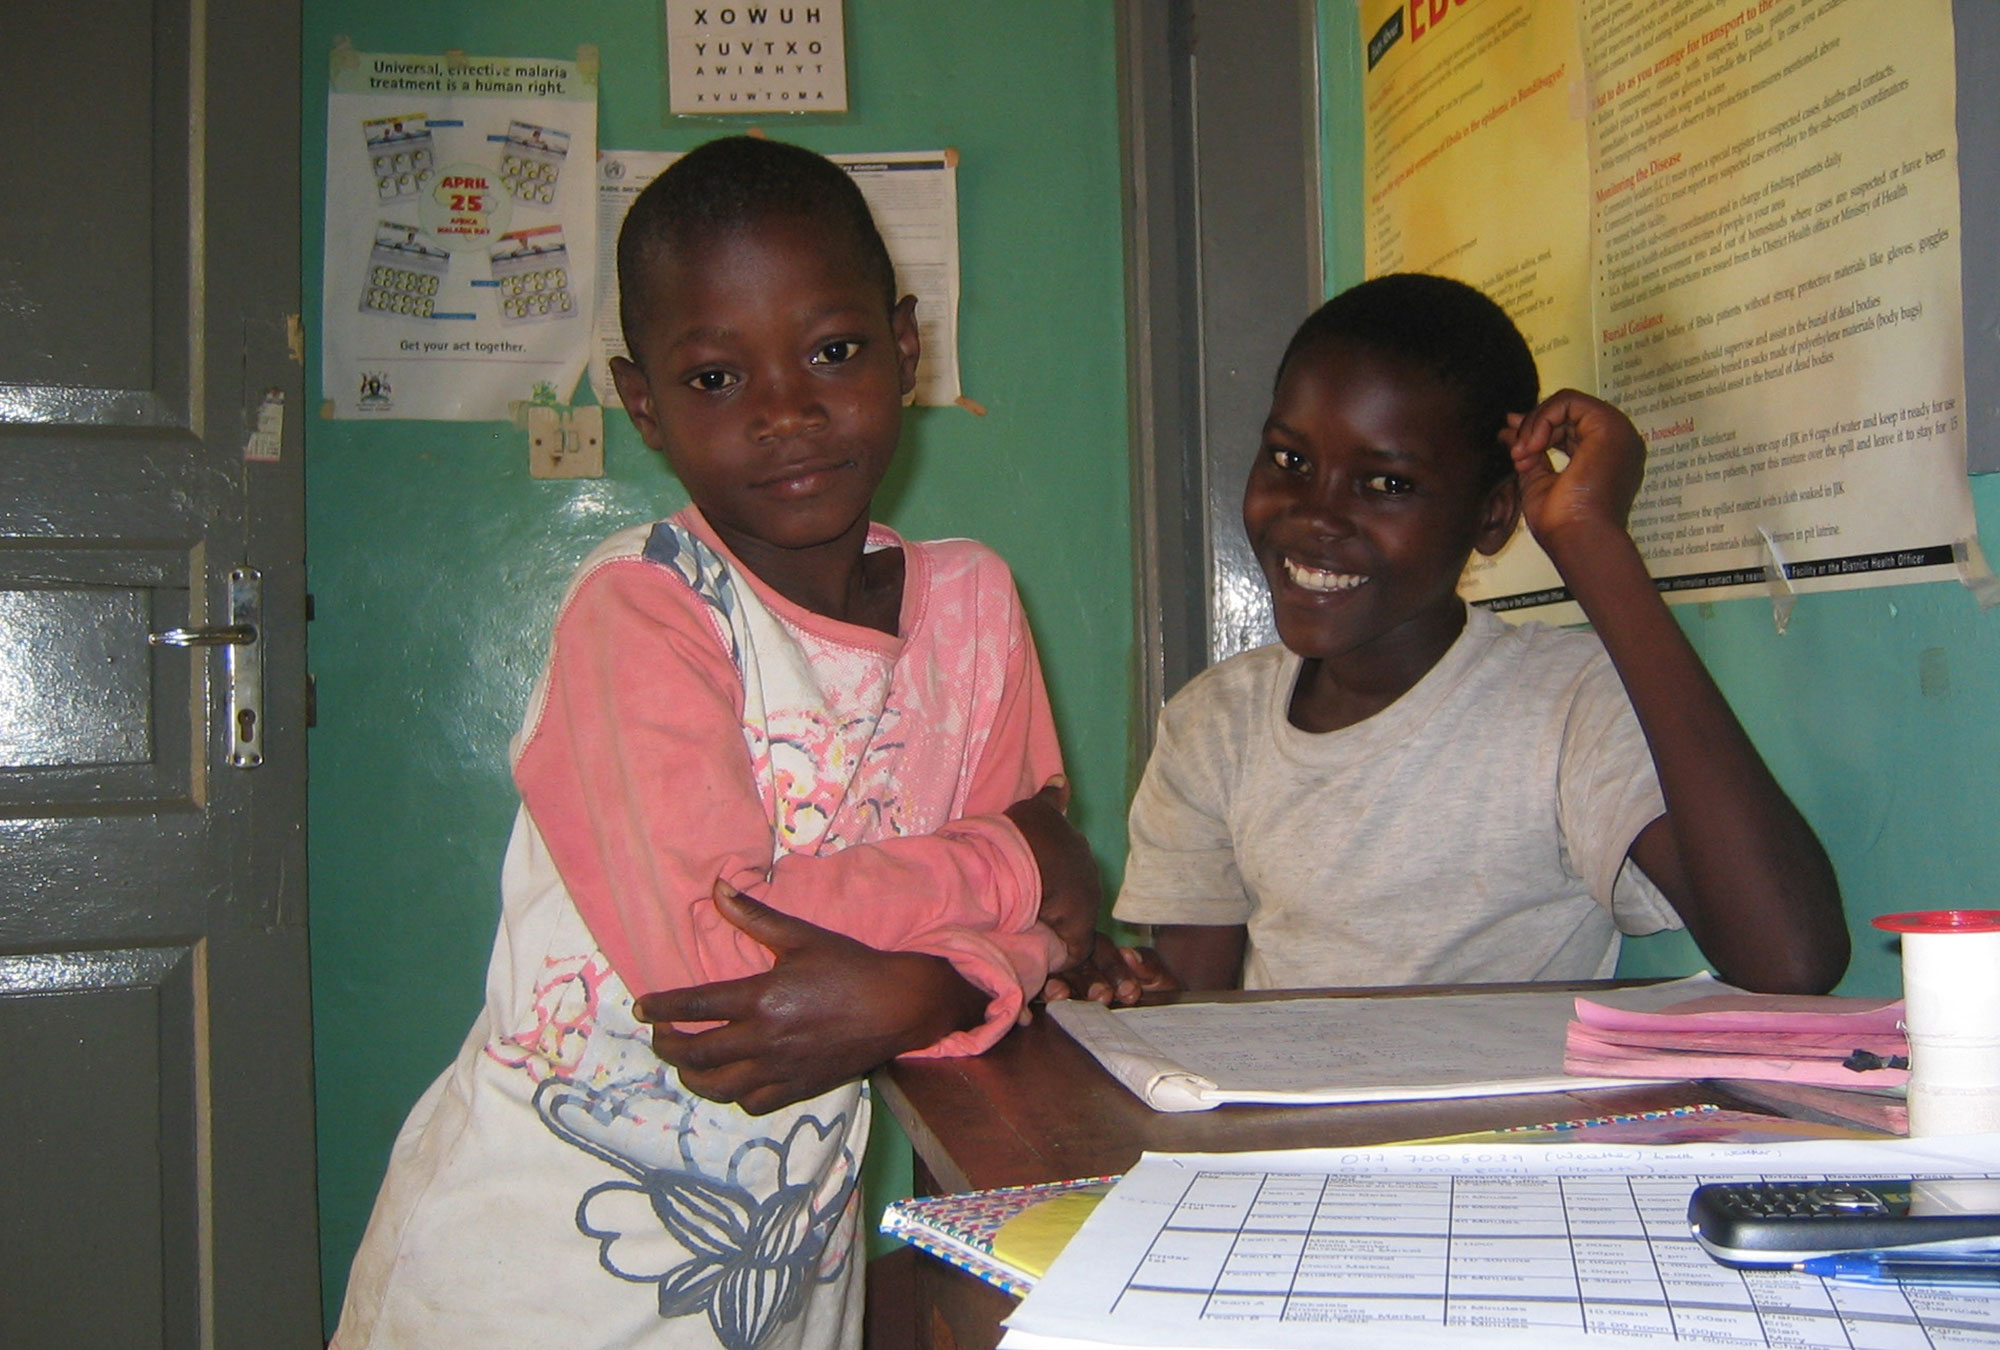 Two Ugandan boys smile in a room filled with posters